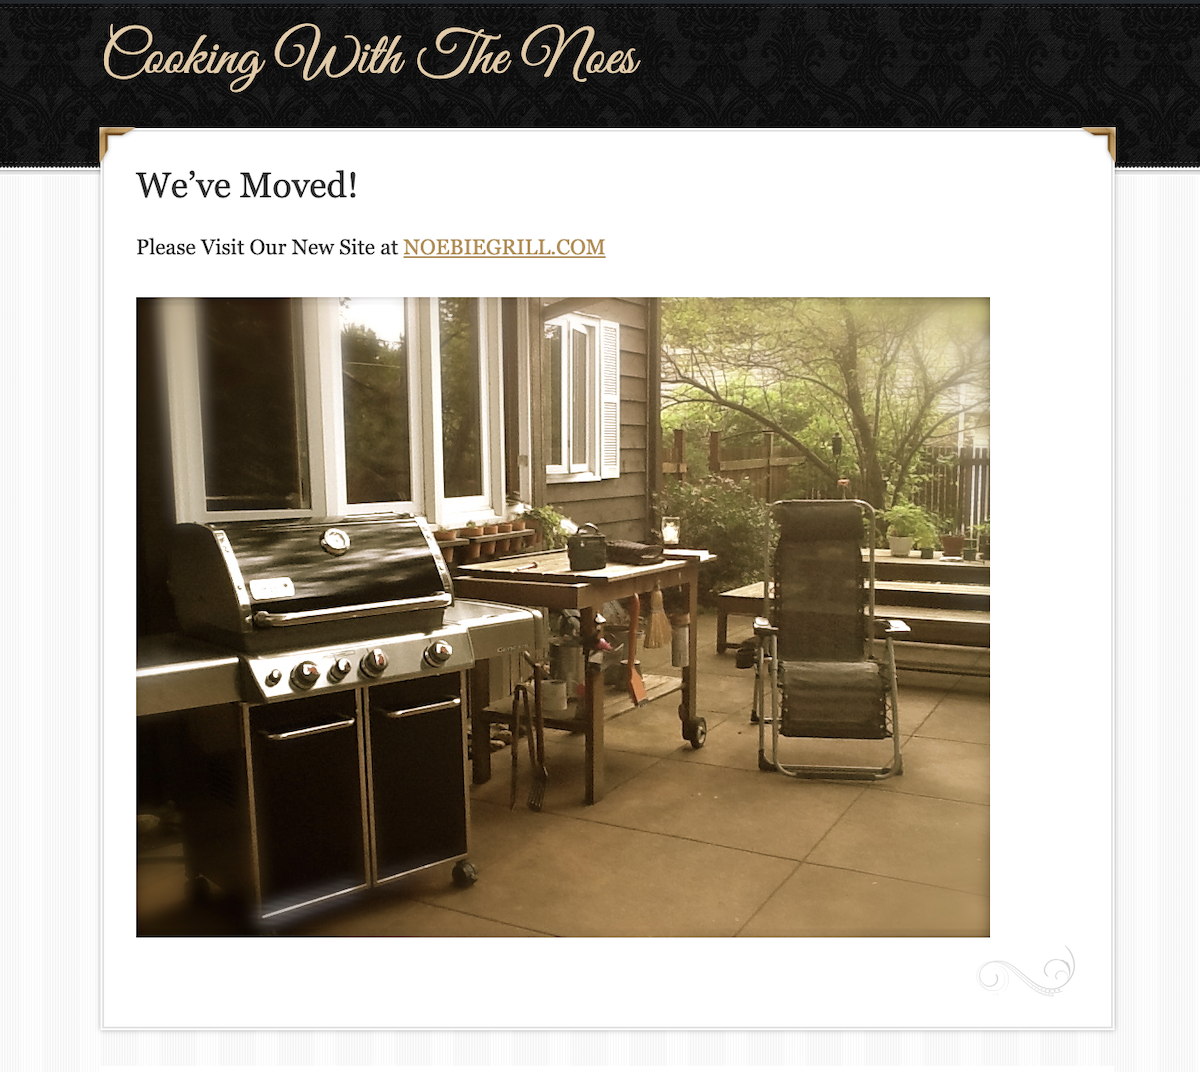 Cooking Site